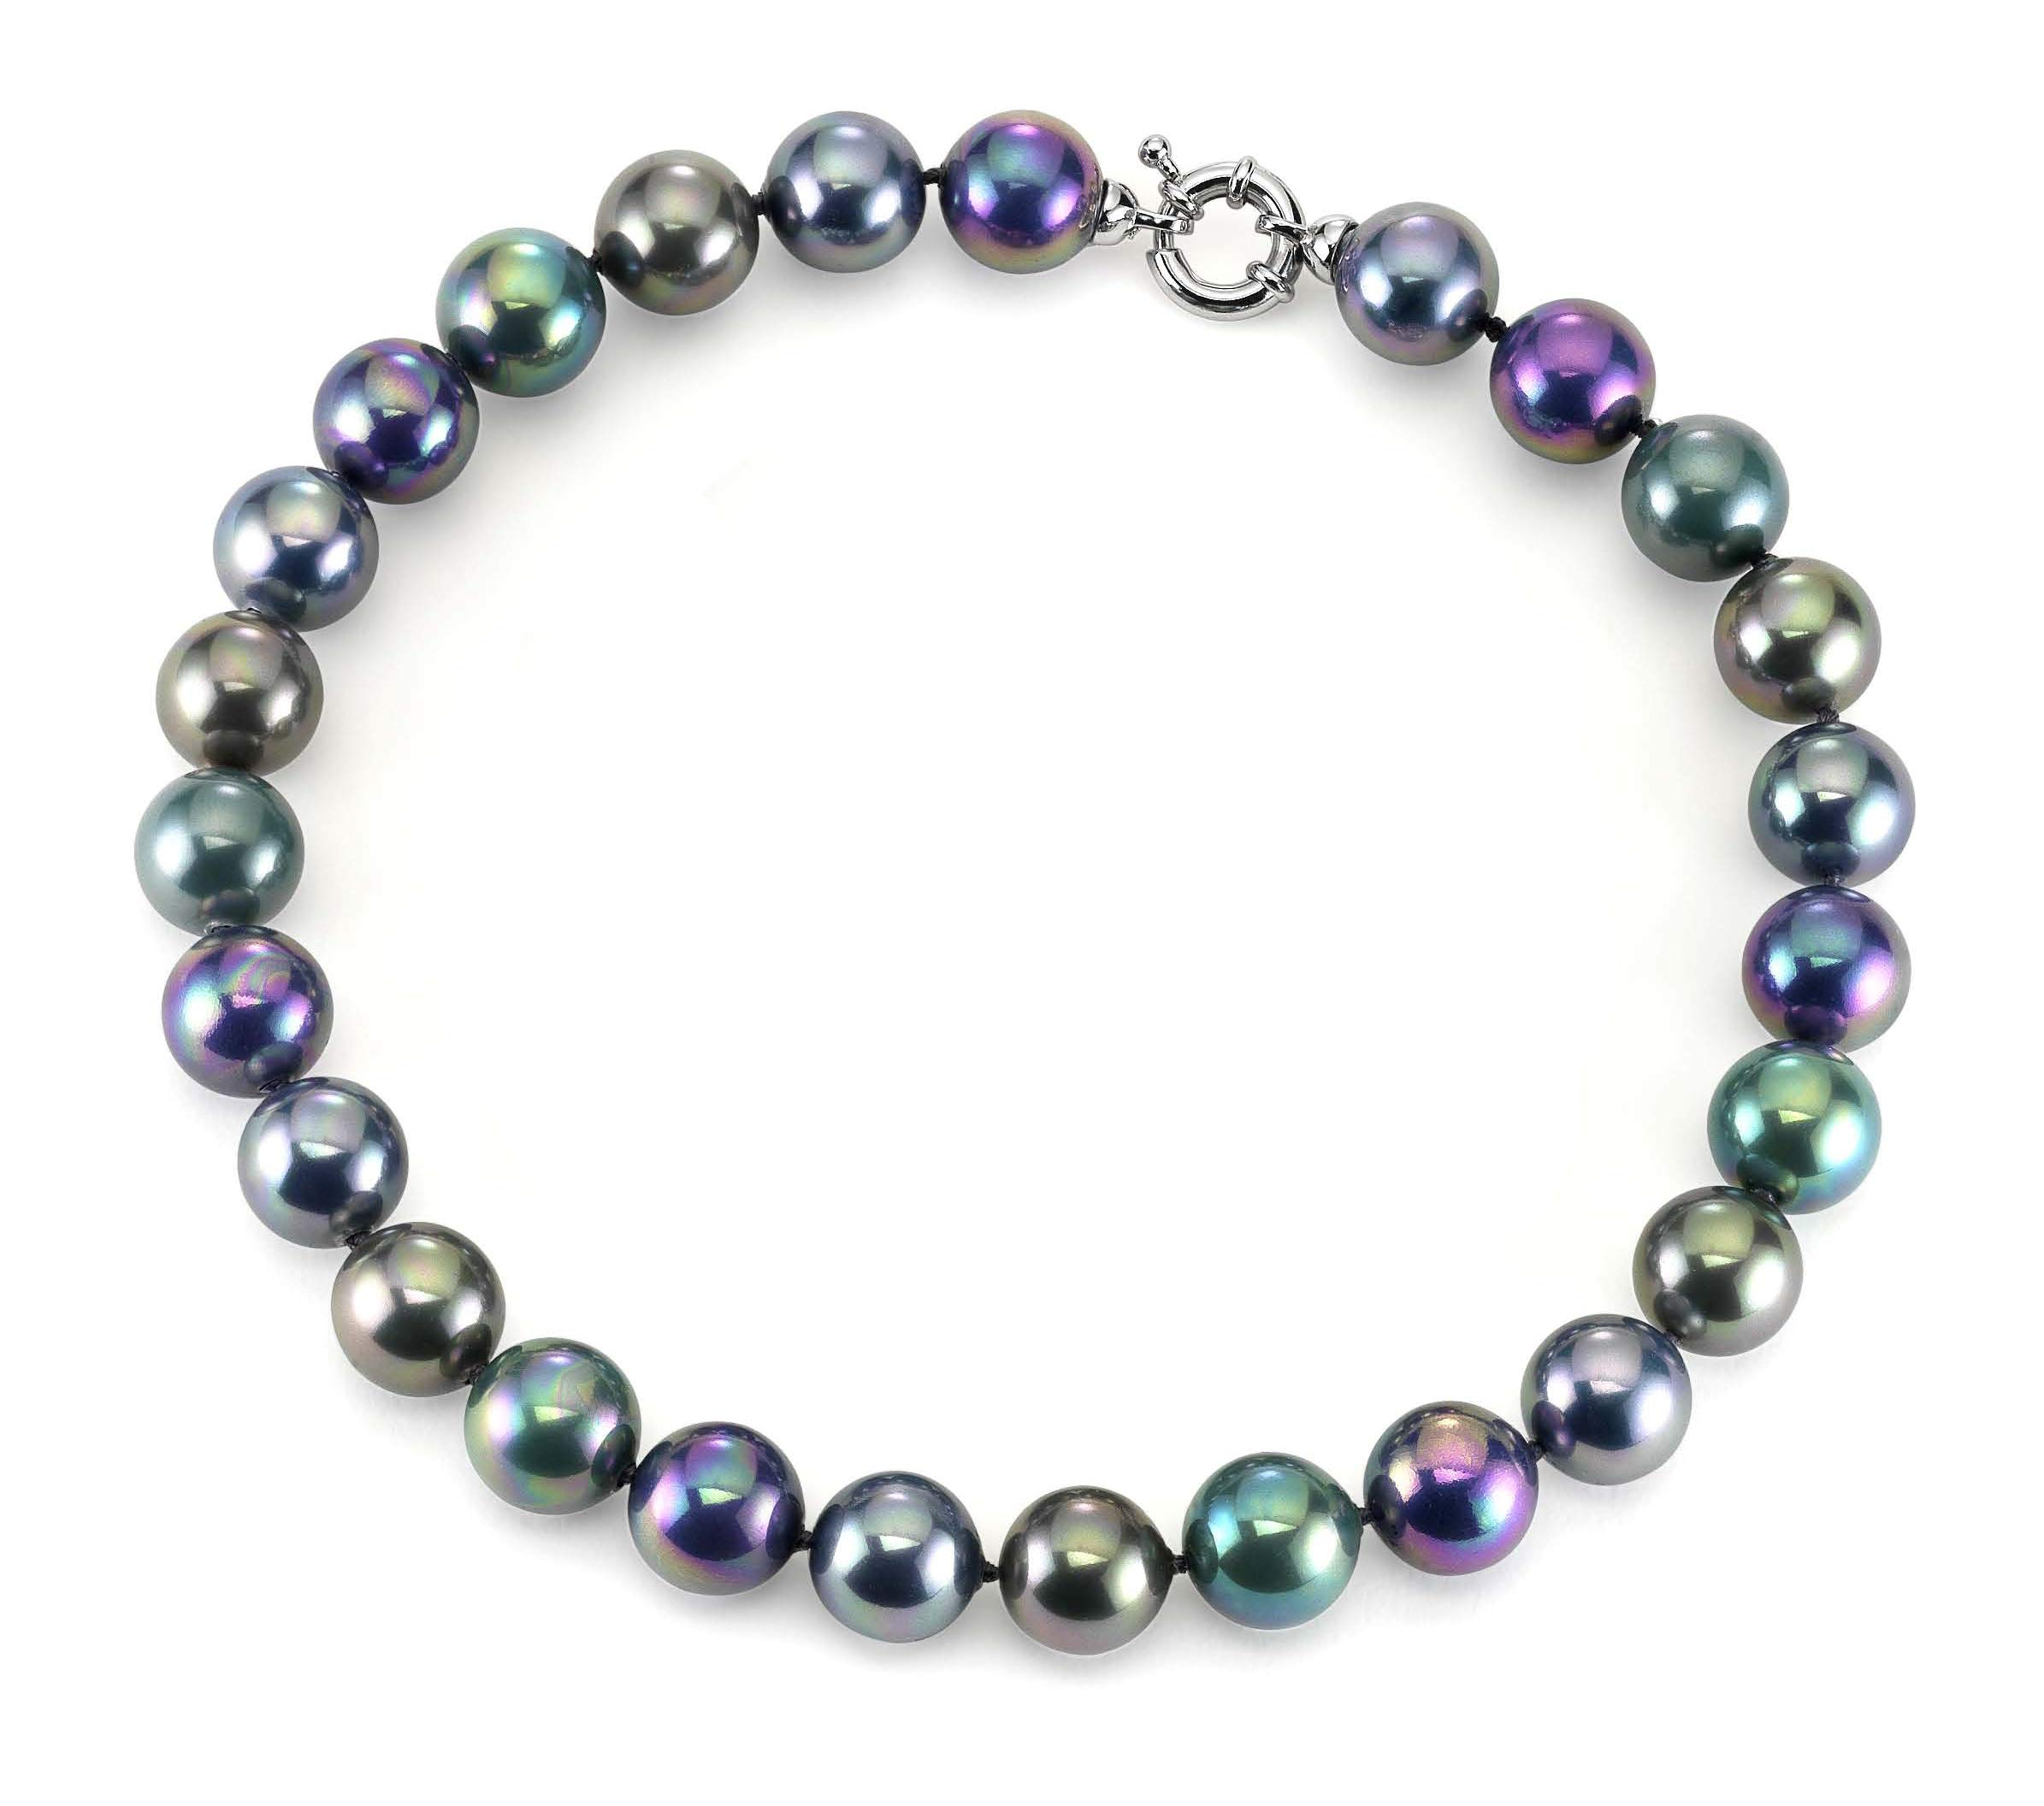 JOIA DE MAJORCA, 14mm 18 inch Tahitian Hues Pearl Necklace, Multi-Color, Rhodium Euro Clasp, Lustrous, Man-Made Organic Strand of Pearls from Majorca Spain by JOIA DE MAJORCA